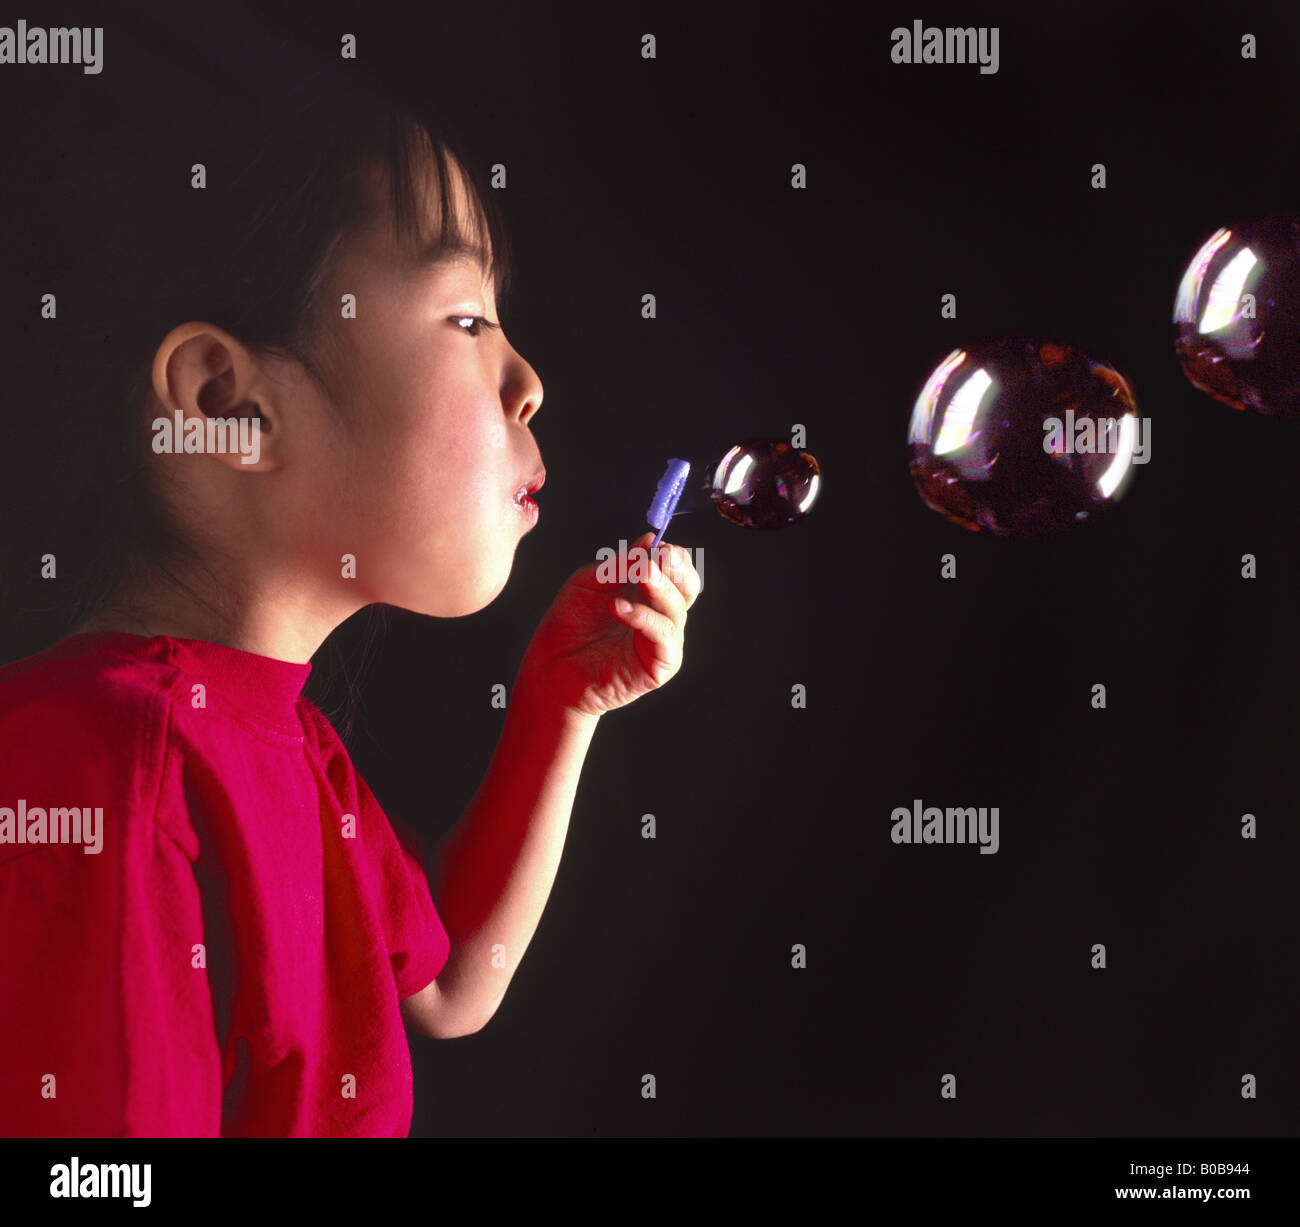 young oriental girl blowing bubbles - Stock Image